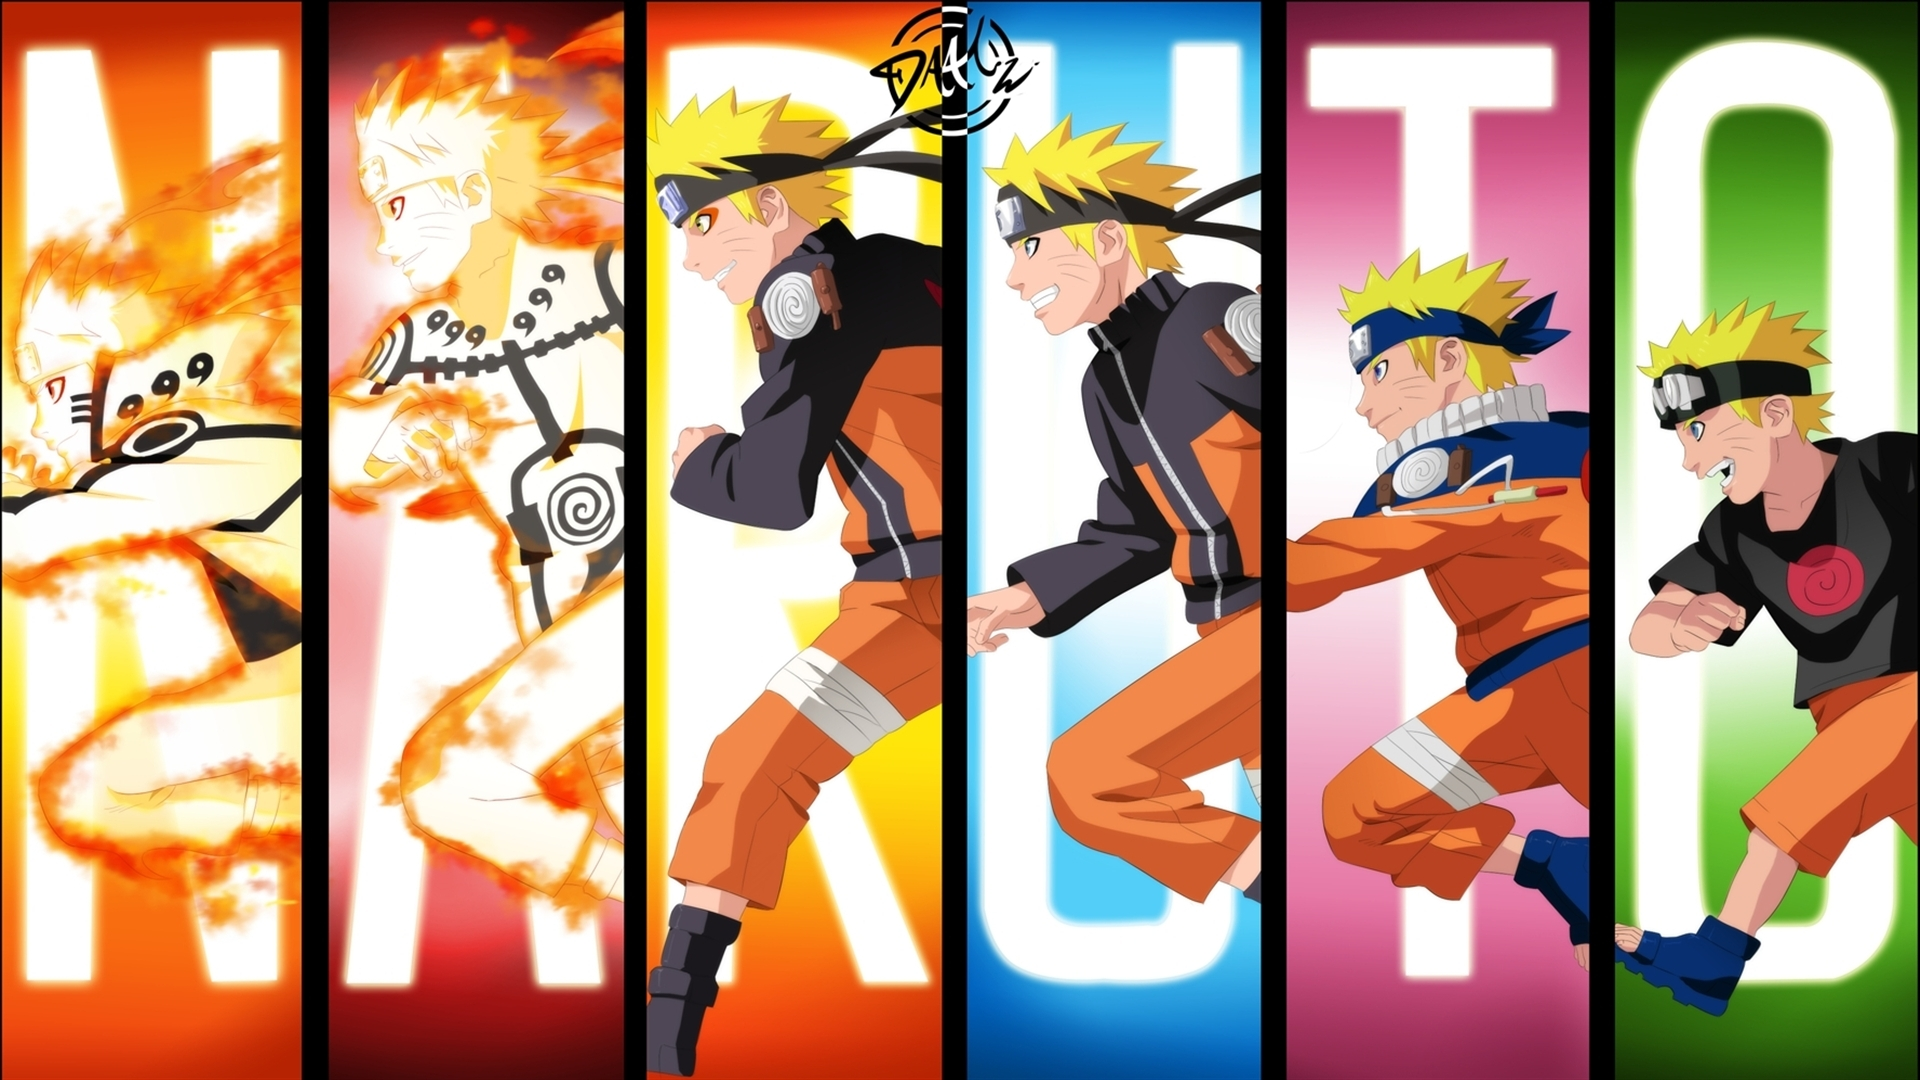 Naruto wallpaper hd android wallpaper hd downloads anime - Best hd anime wallpapers for android ...